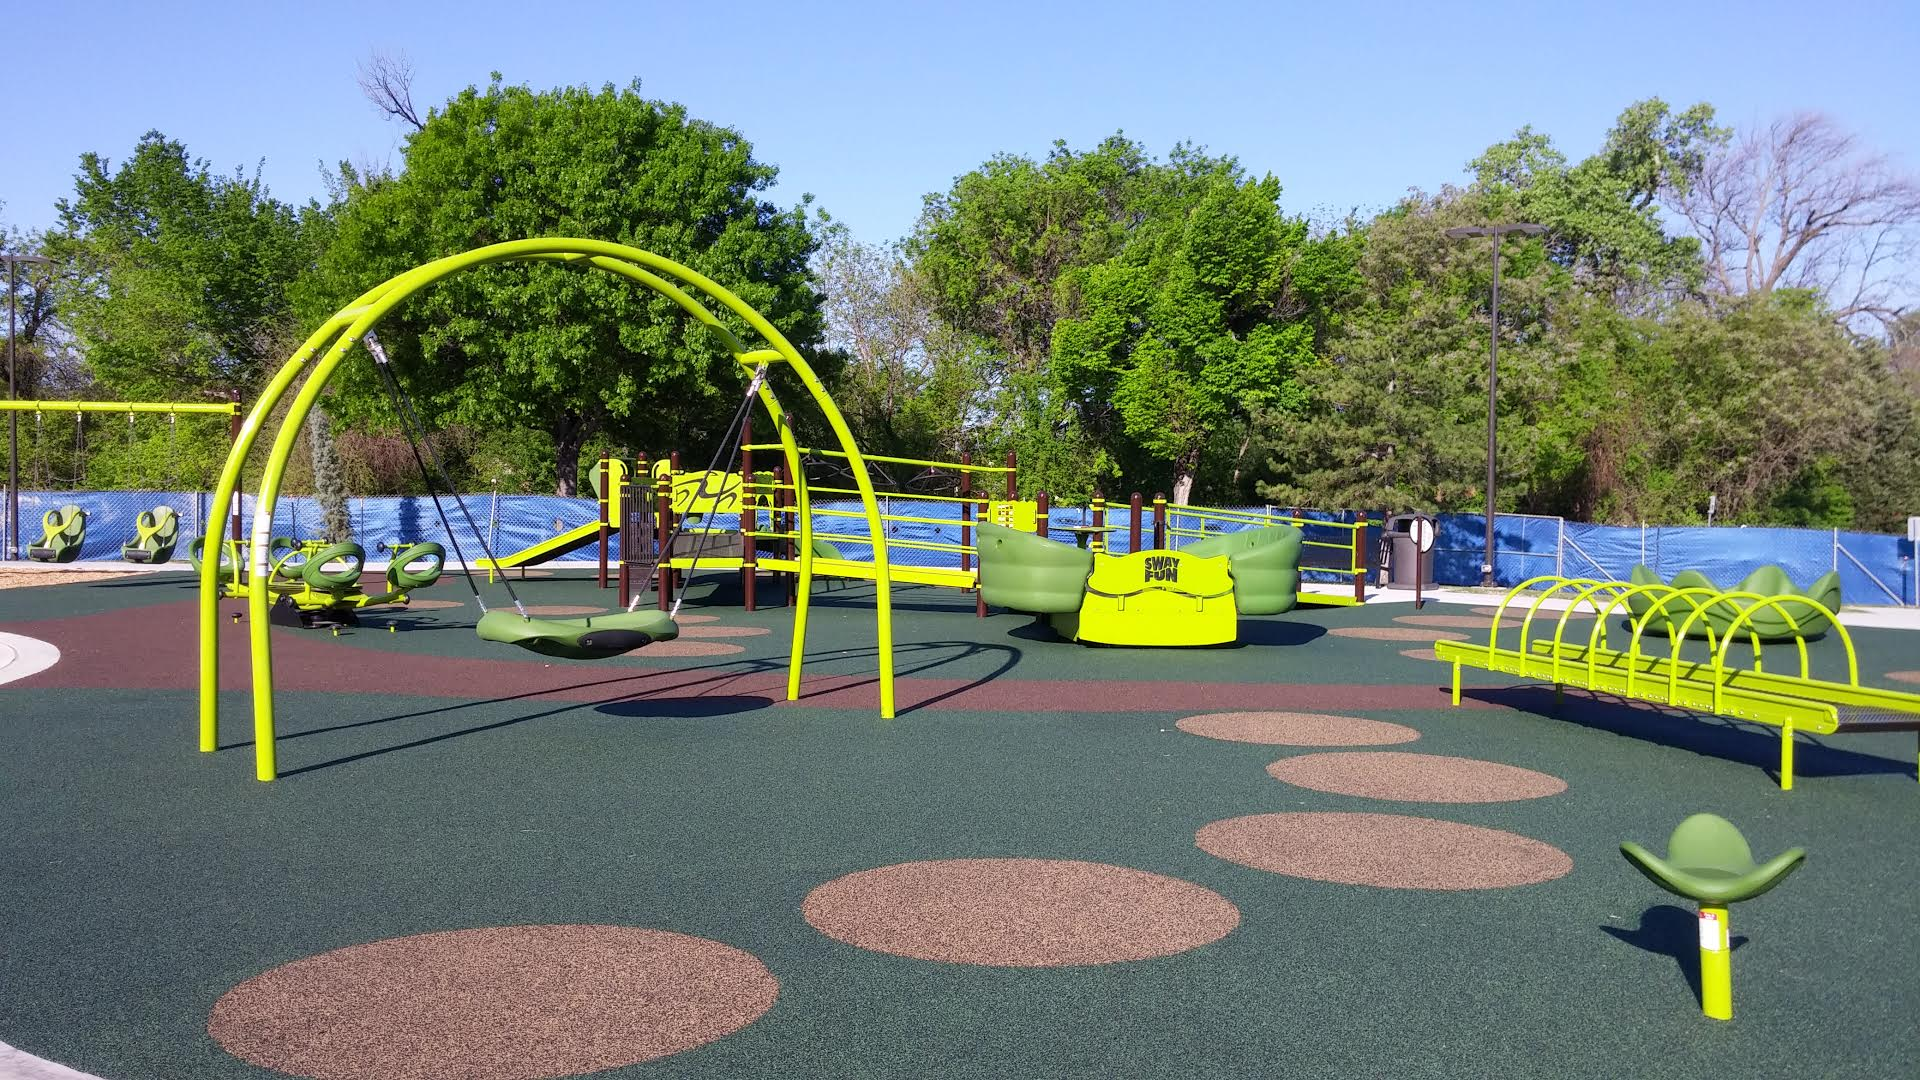 Plano Texas All-Abilities Park